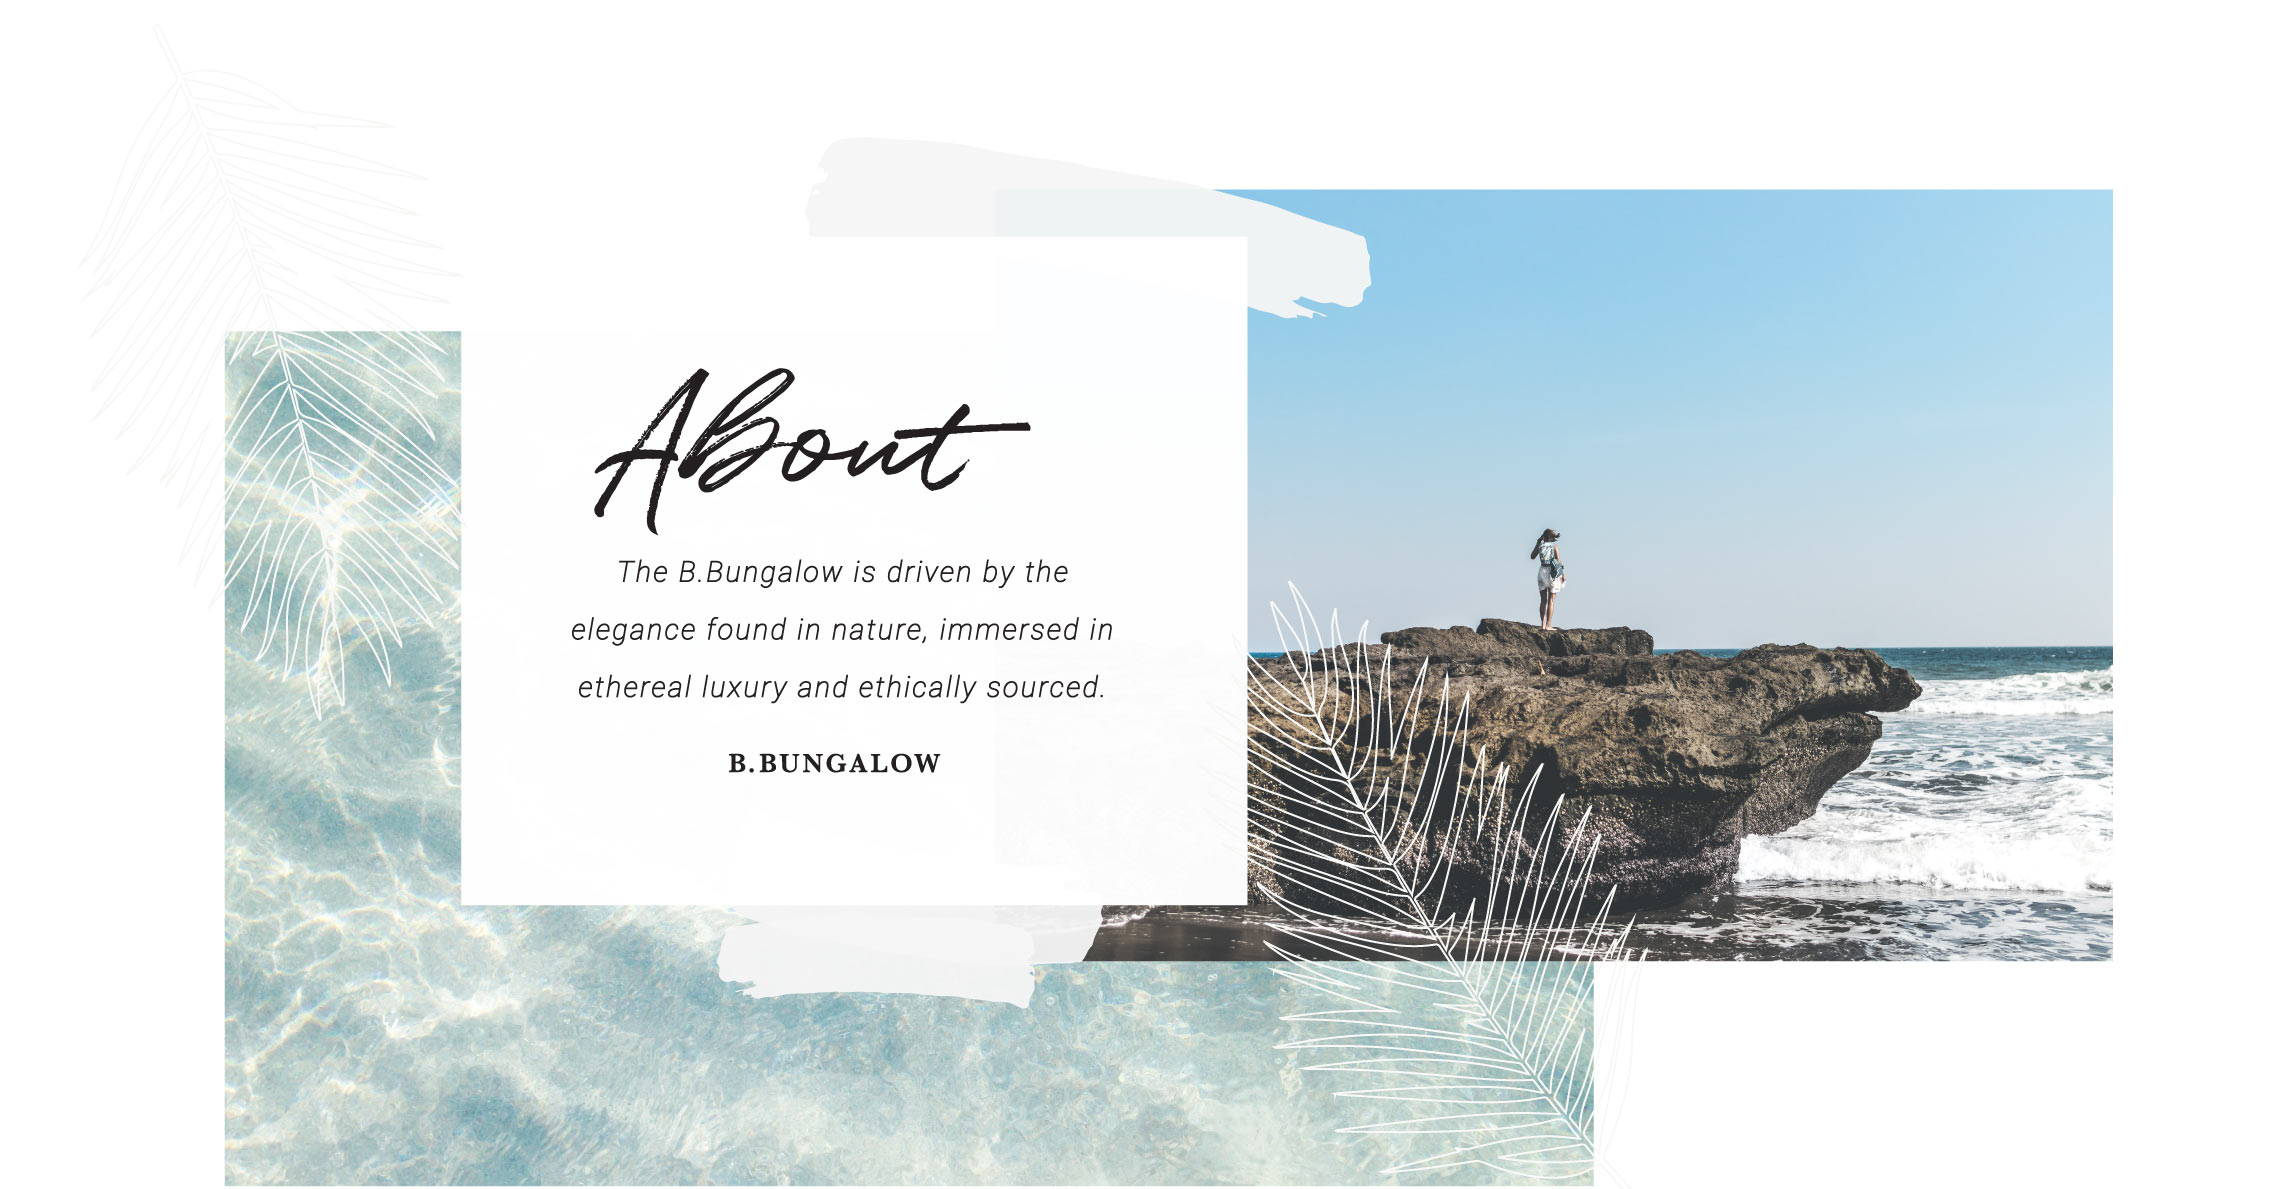 About B. Bungalow - B. Bungalow is driven by the elegance found in nature, immersed in ethereal luxury and ethically sourced.